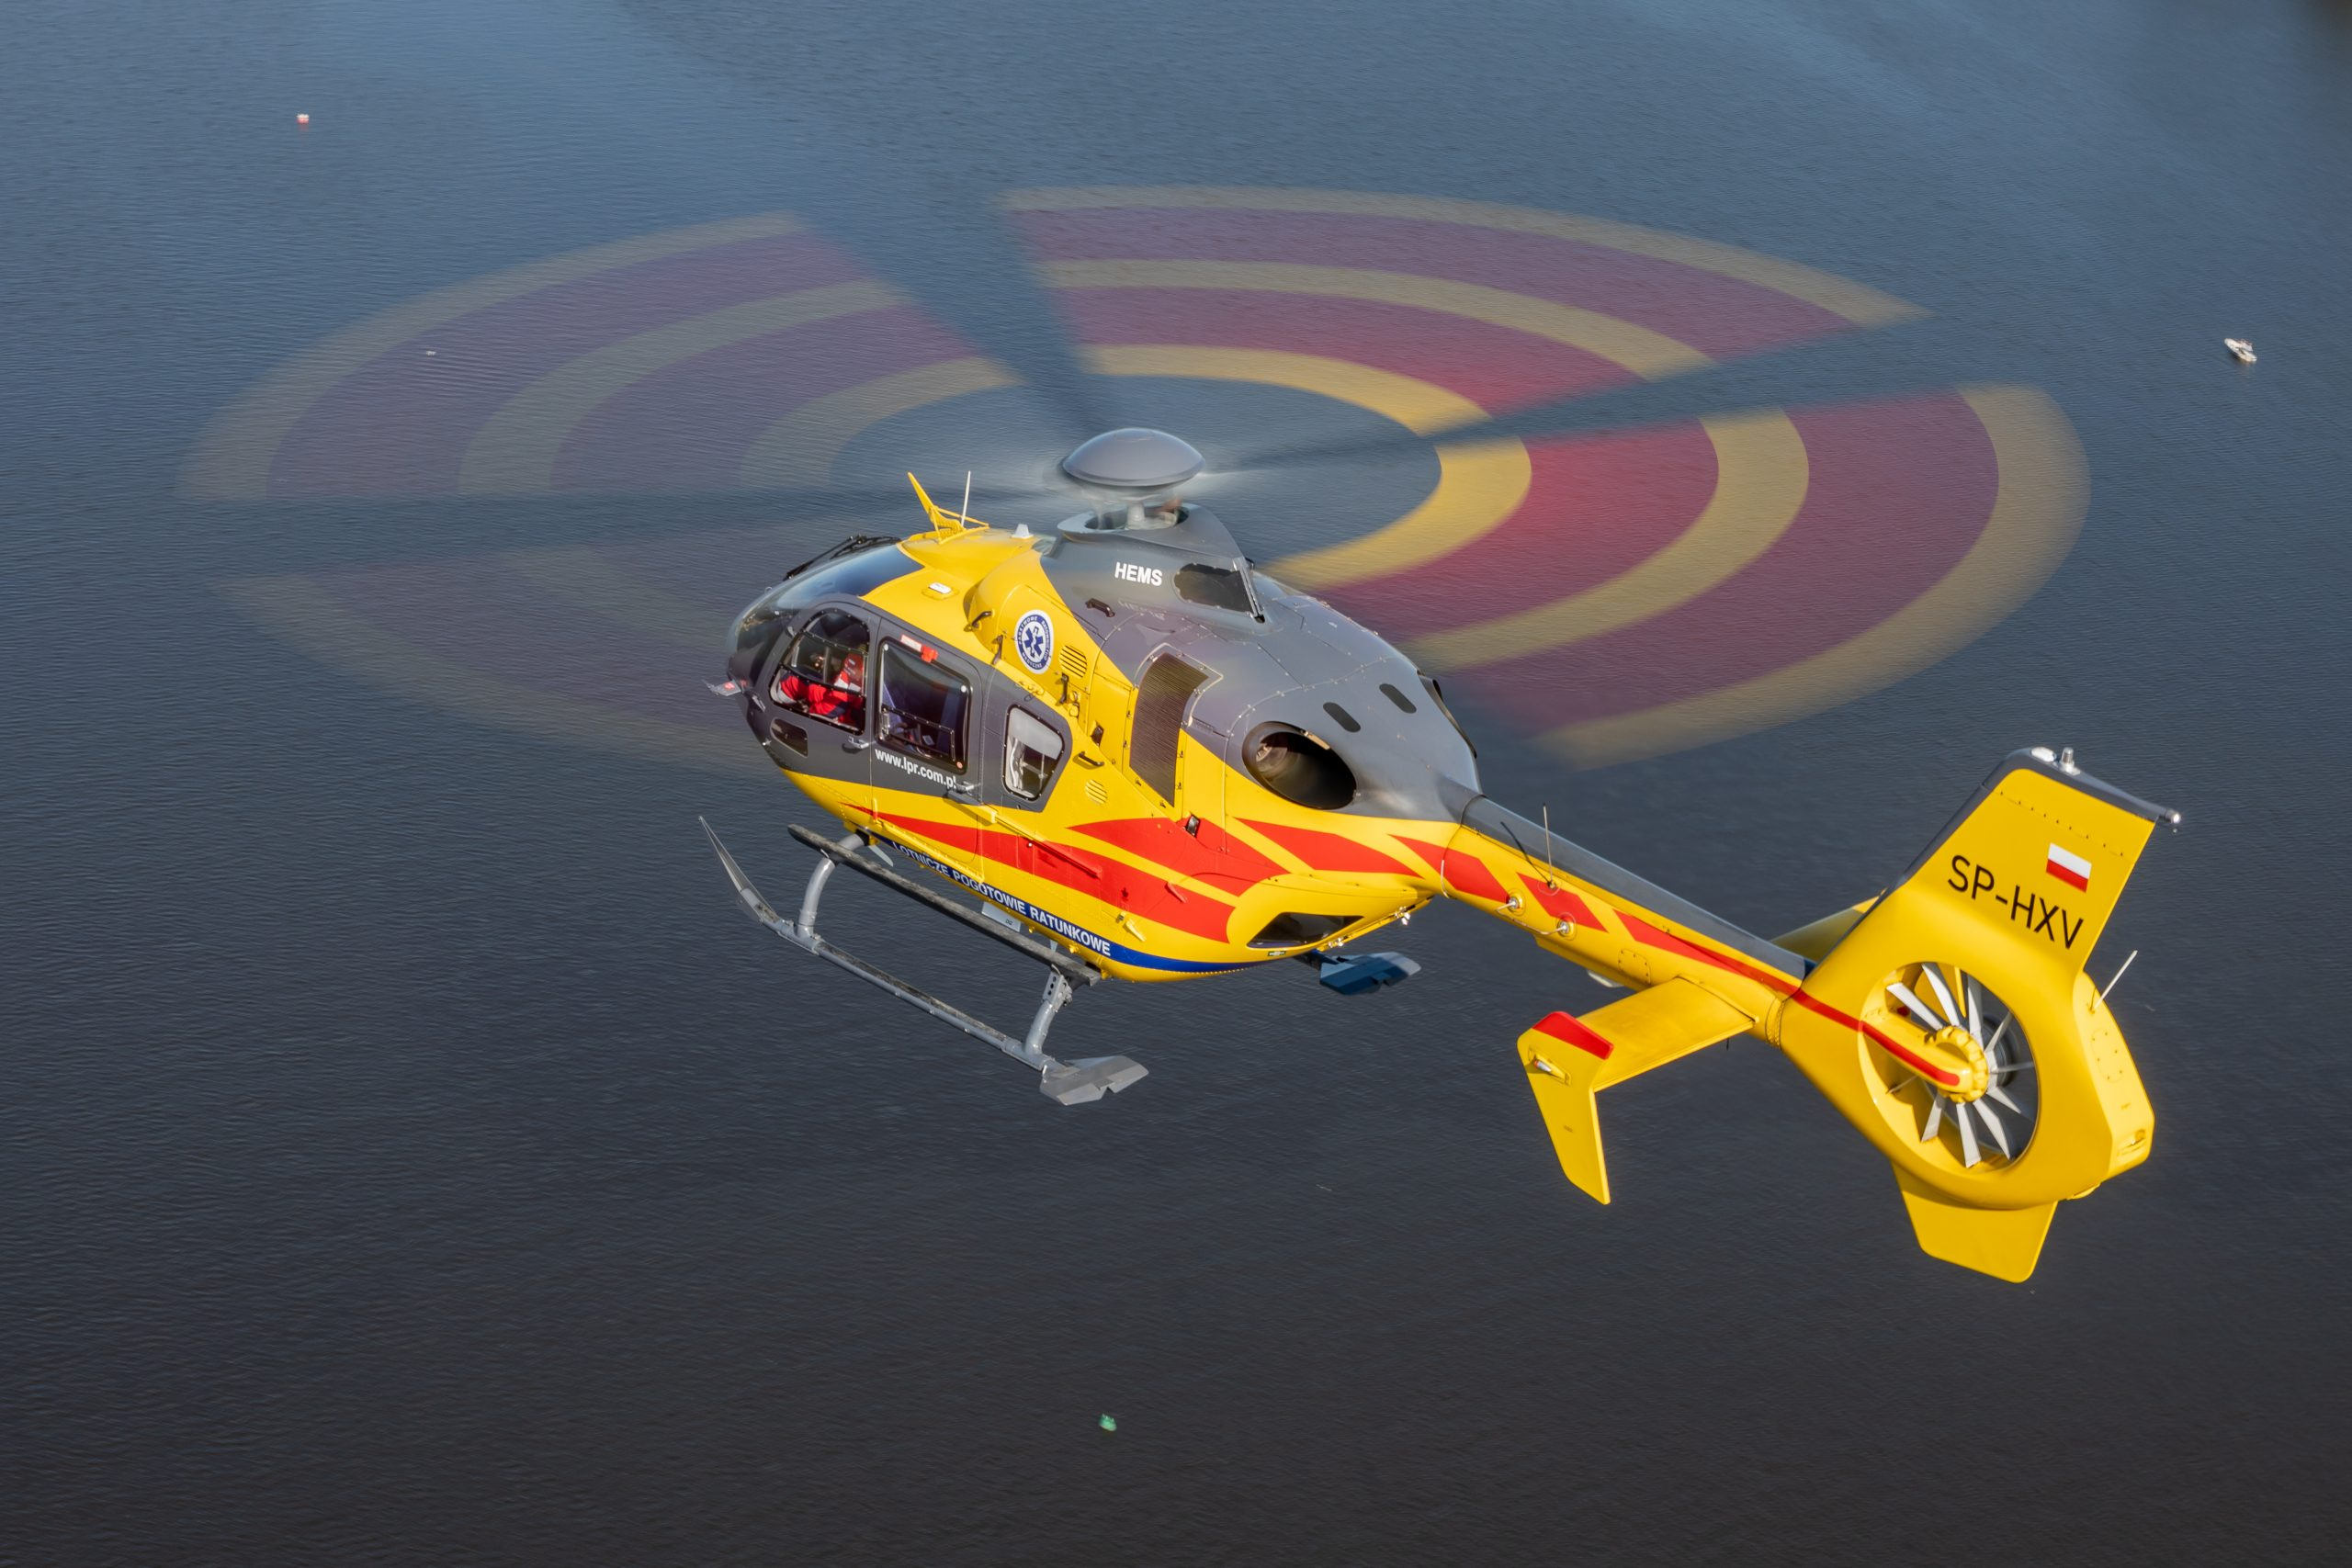 A Full-On Approach to Helicopter Safety